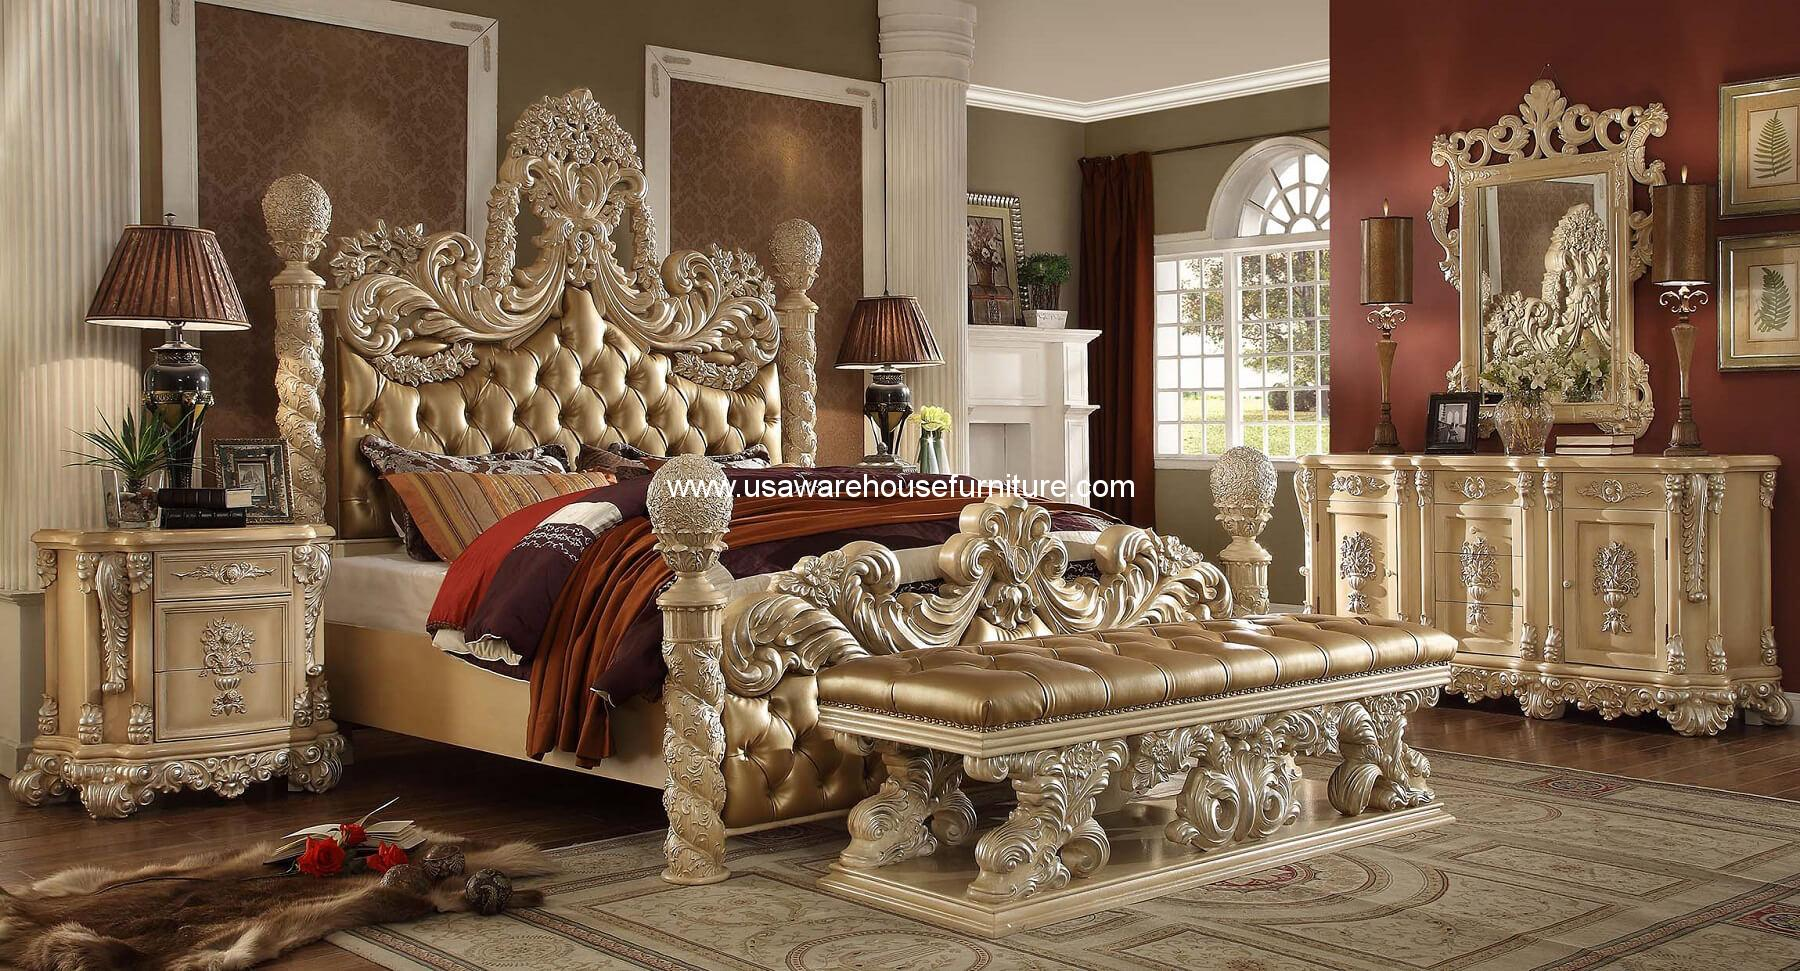 Victorian Bedroom Set | Victorian Palace Hd 7266 Bed Usa Warehouse Furniture